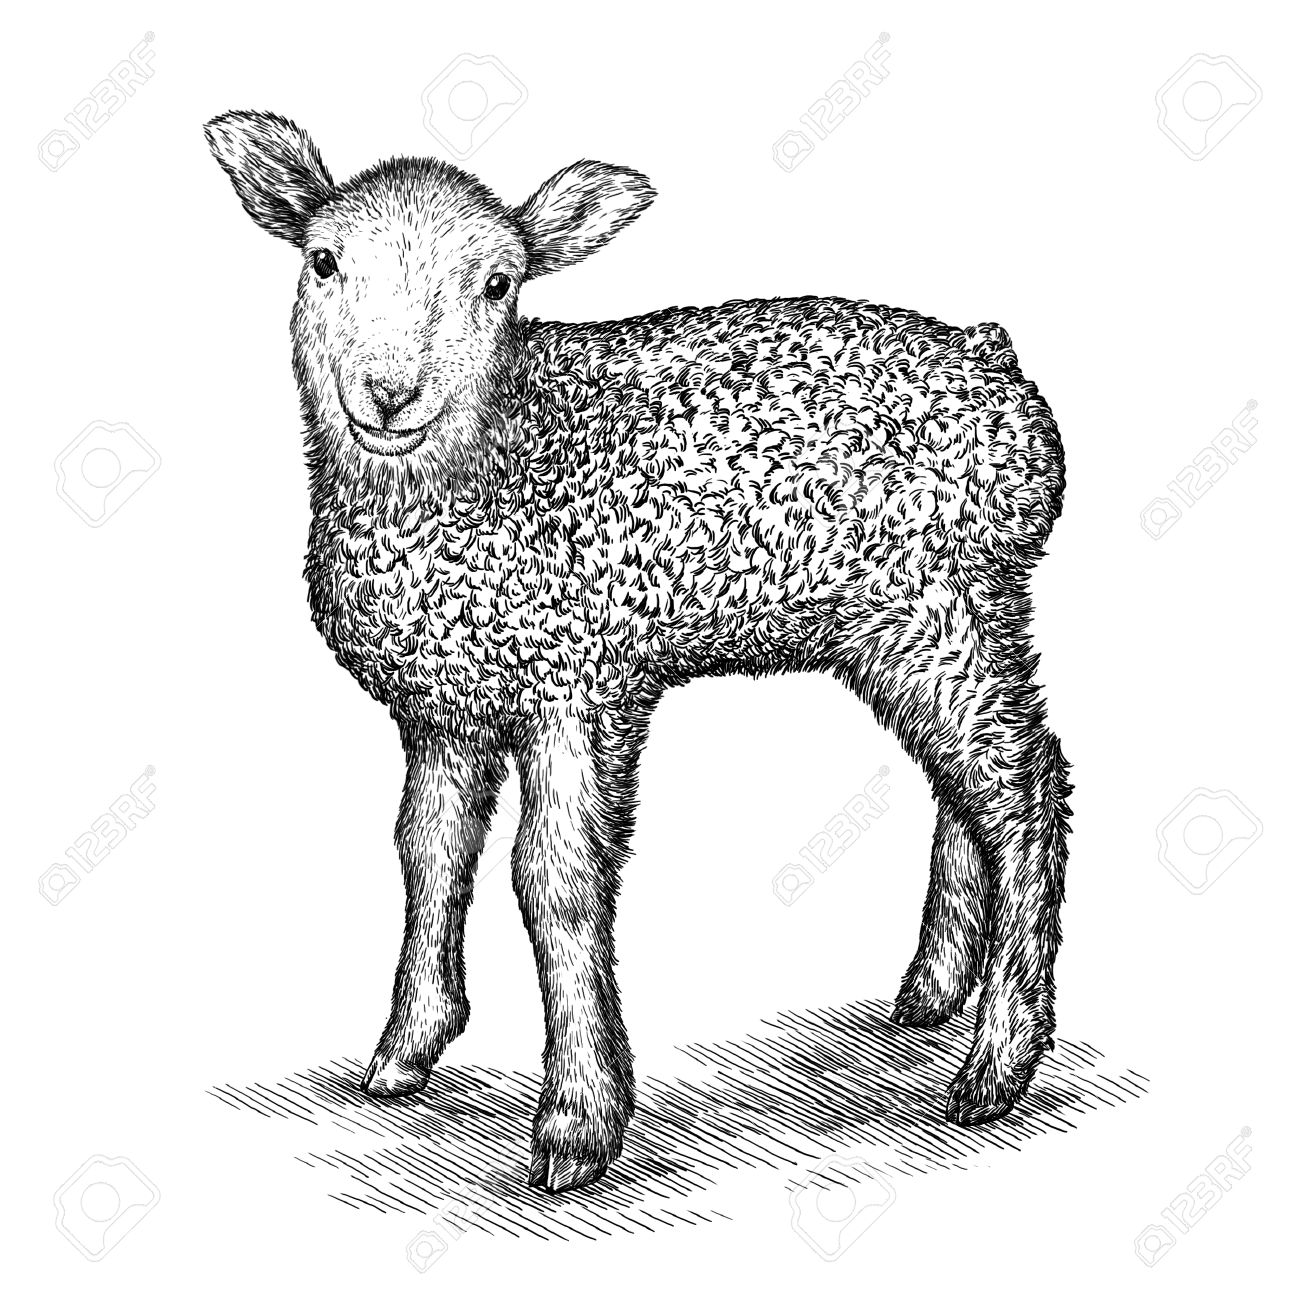 engrave isolated sheep illustration sketch linear art stock photo 46494370